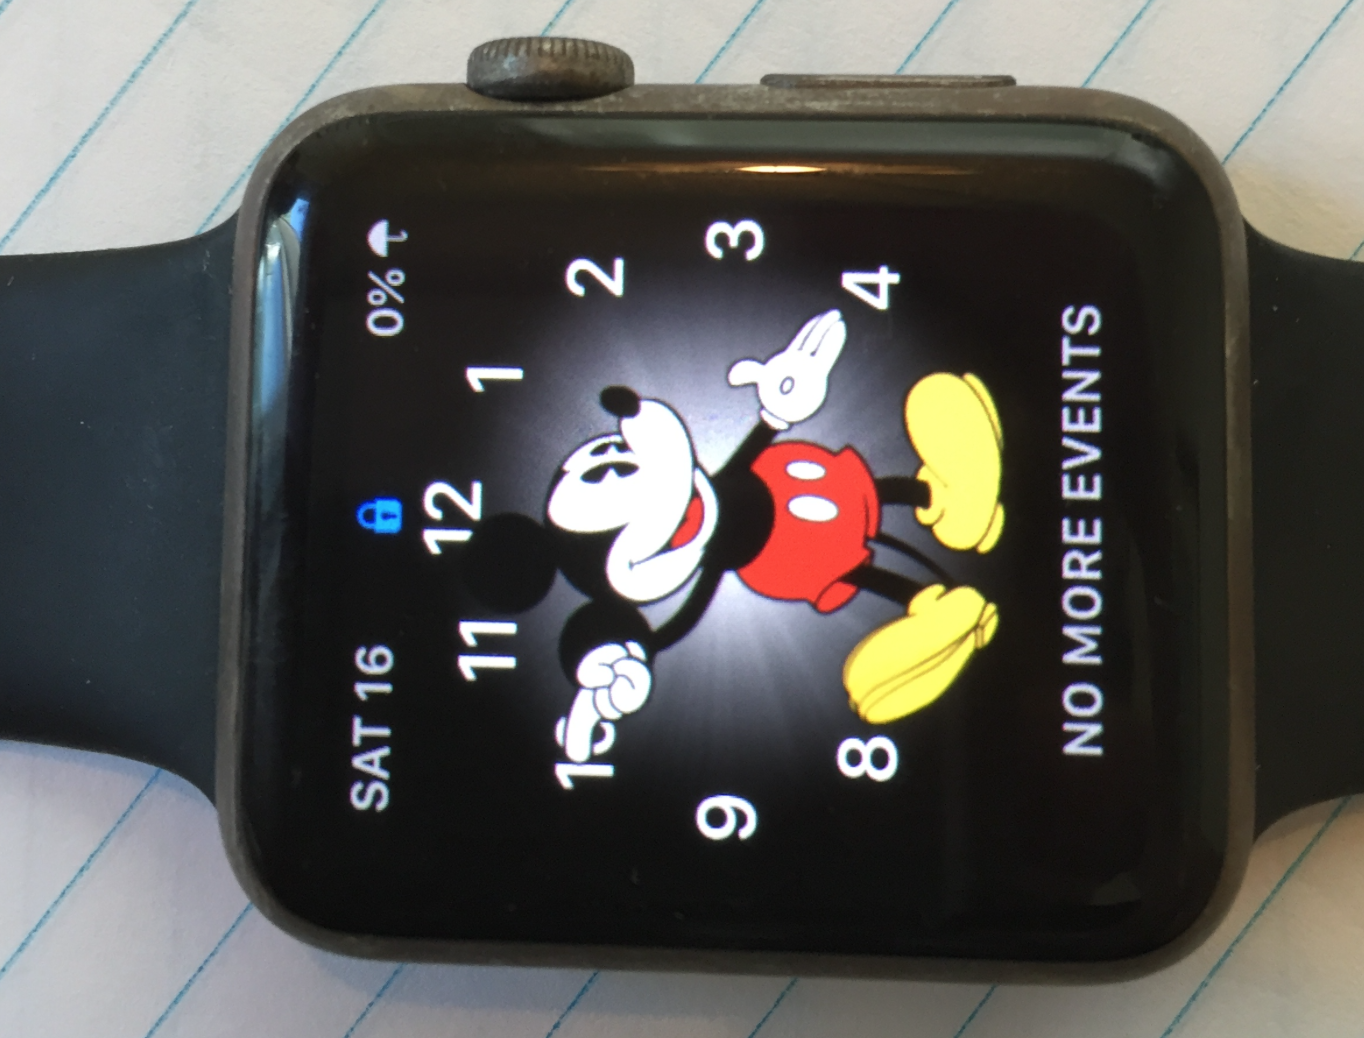 Apple Watch Survives Over a Month Submerged in Lake